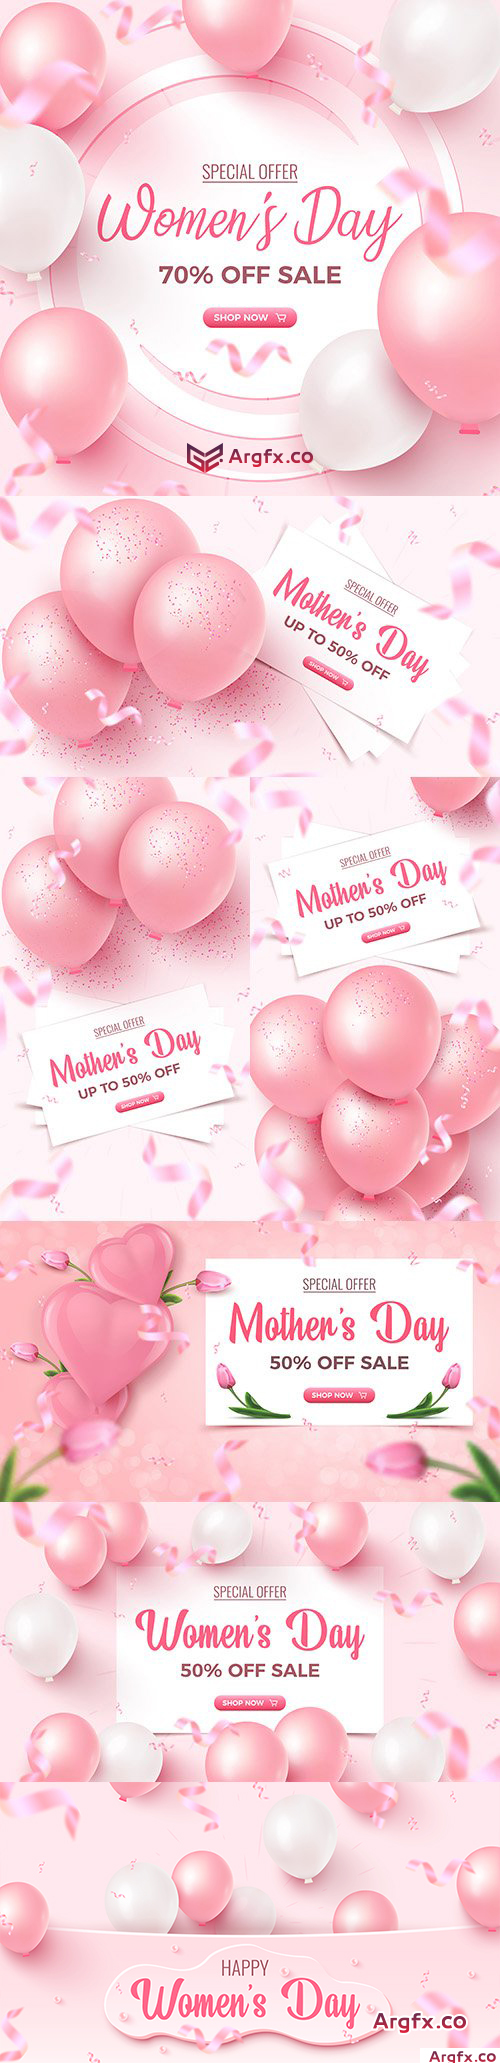 Mother 's Day special offer design poster in pink